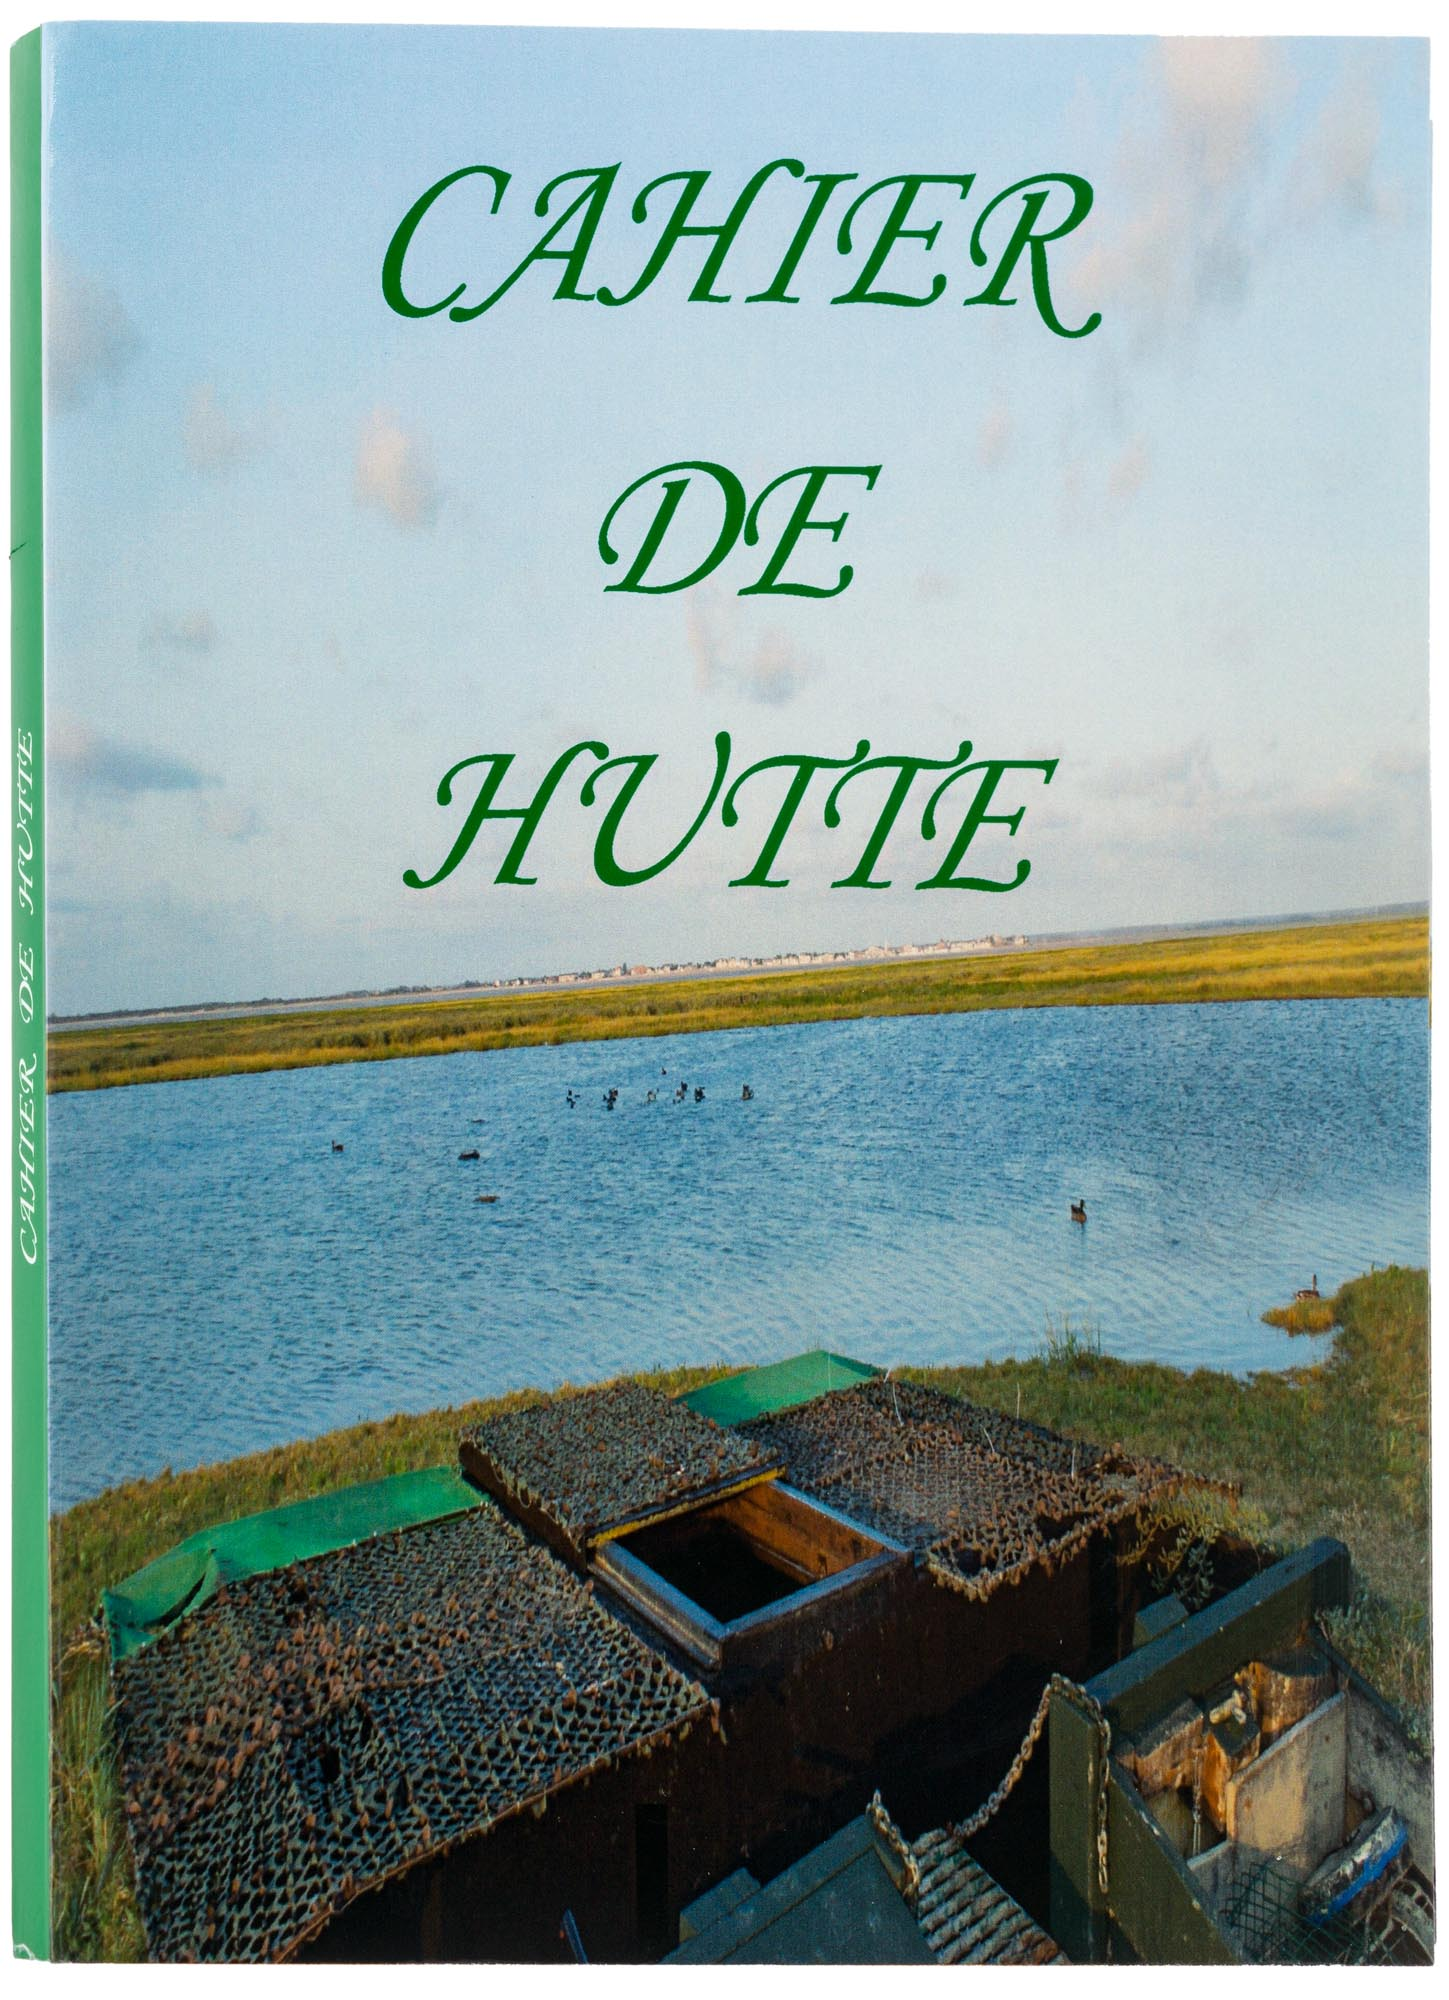 Cahier de hutte, made in chasse - equipements de chasse